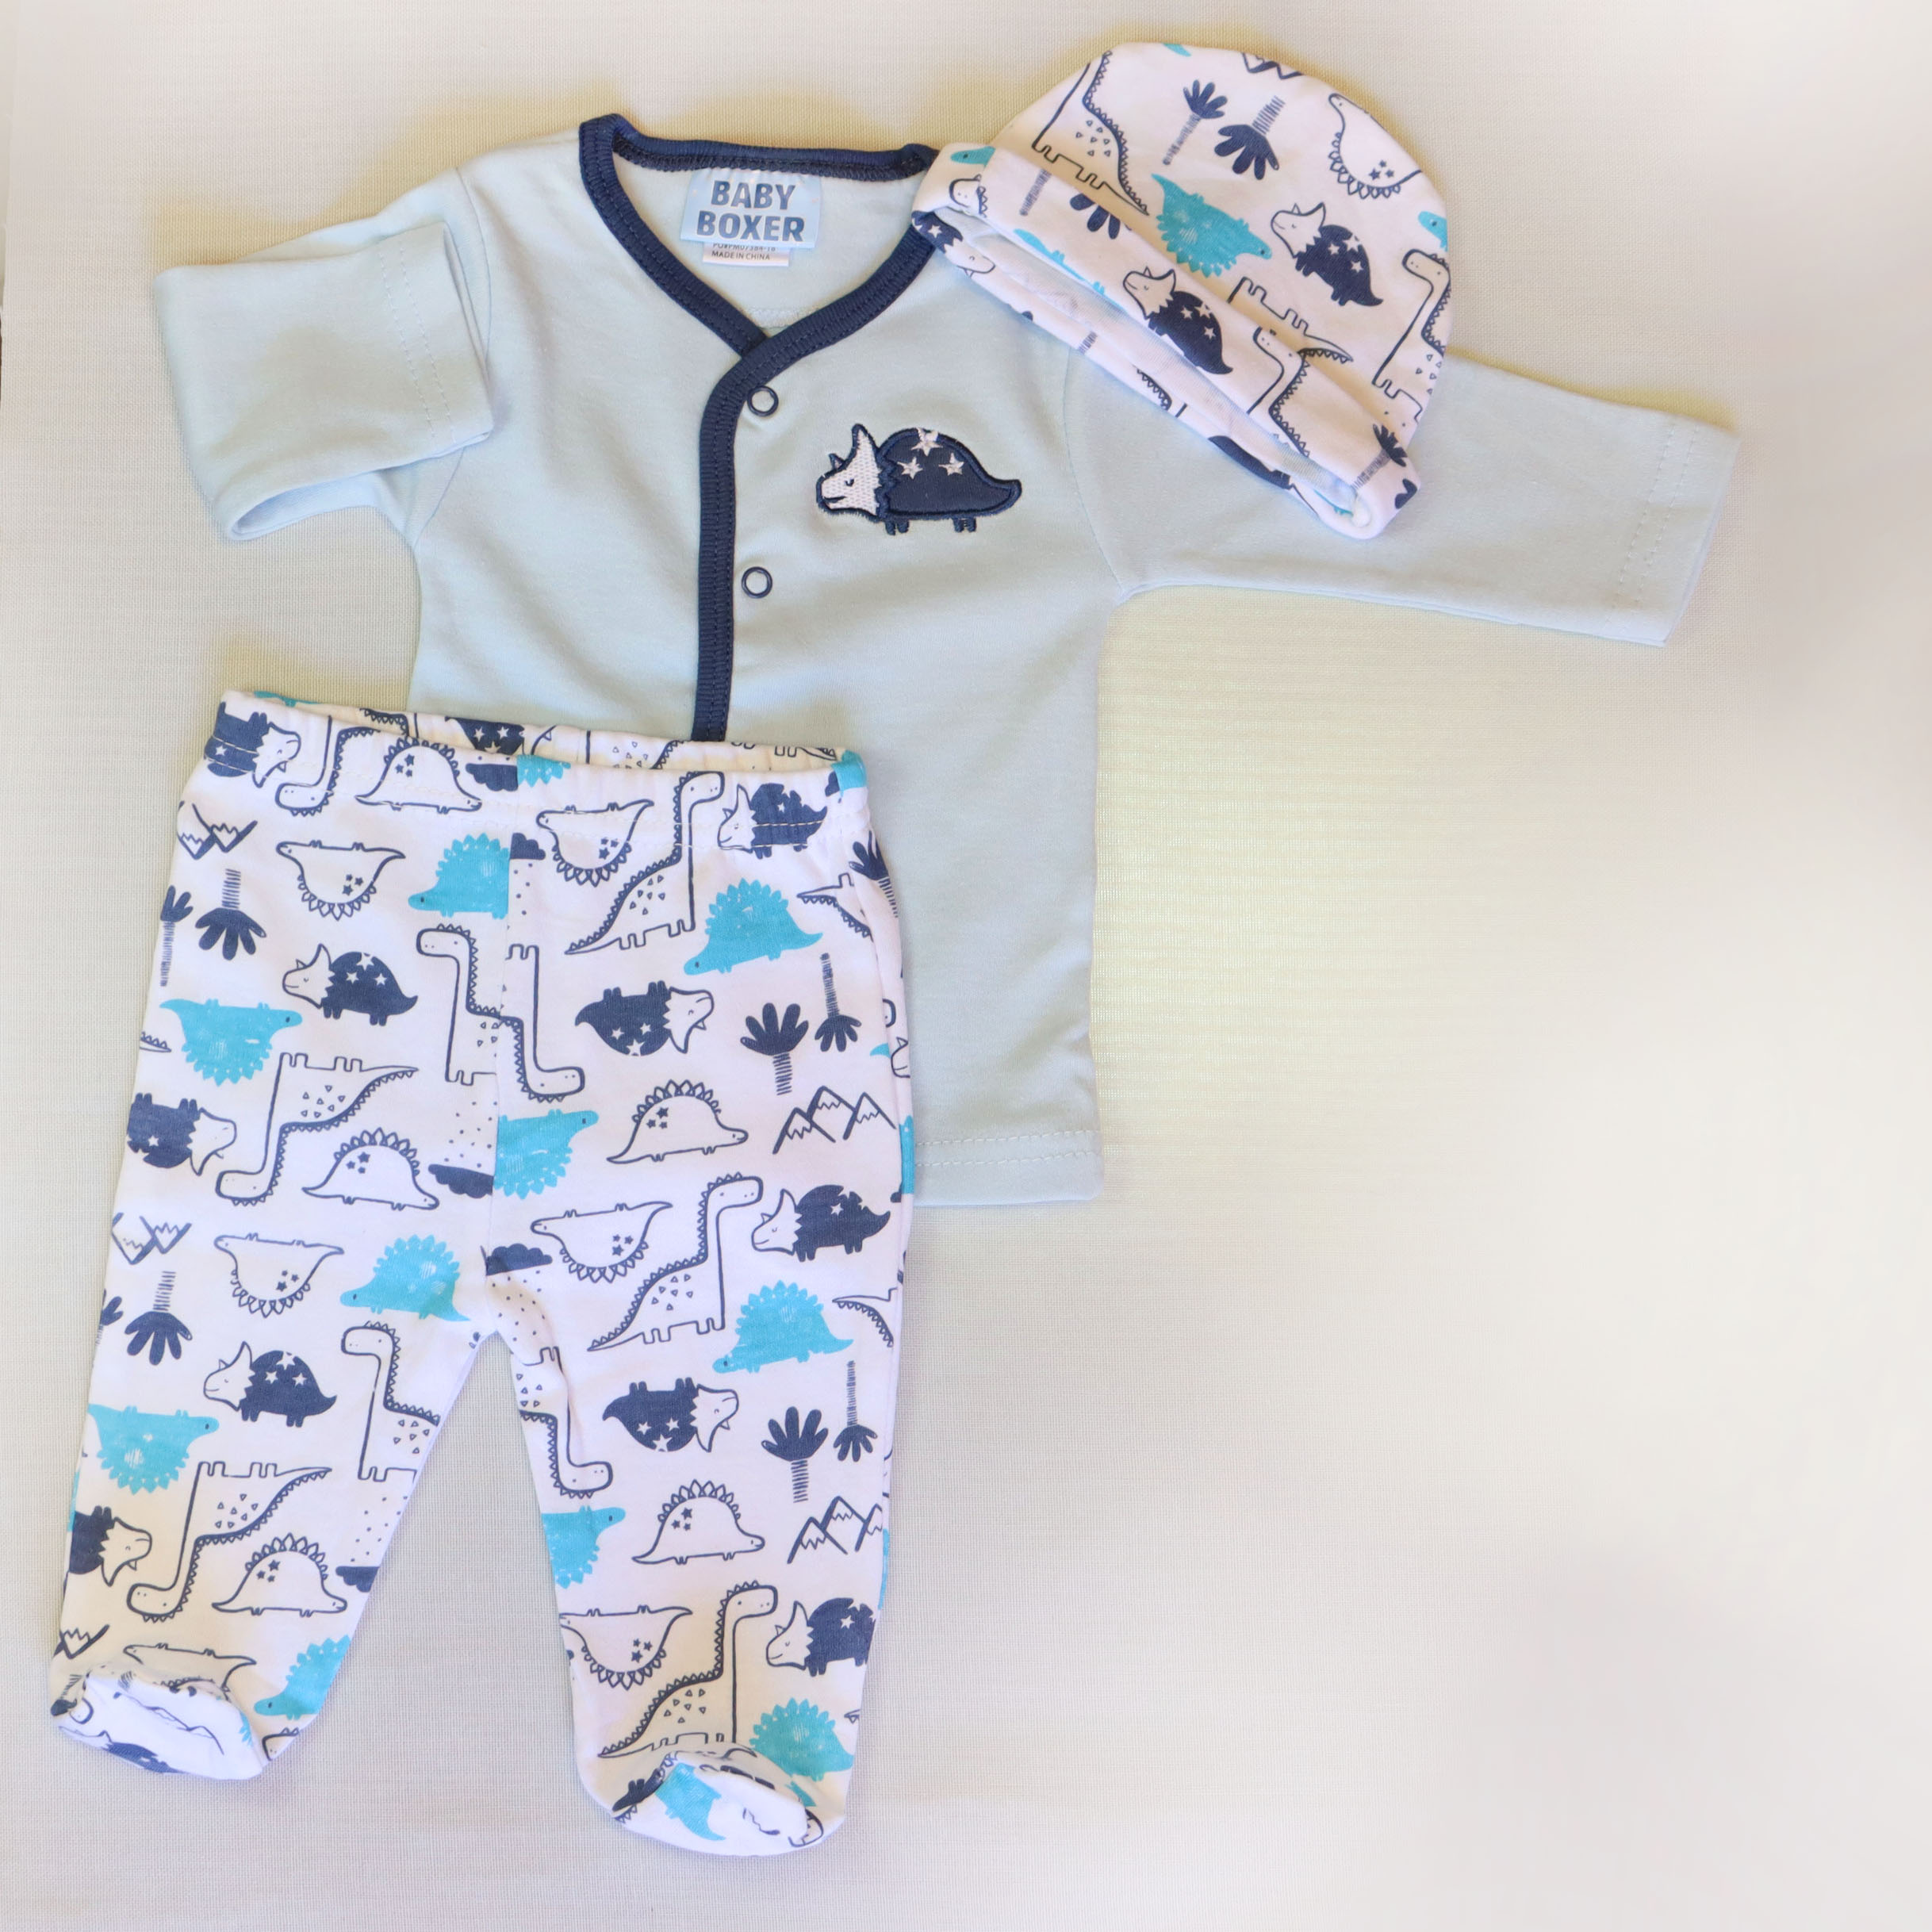 Baby boy cotton suit 3 piece set – White & Blue